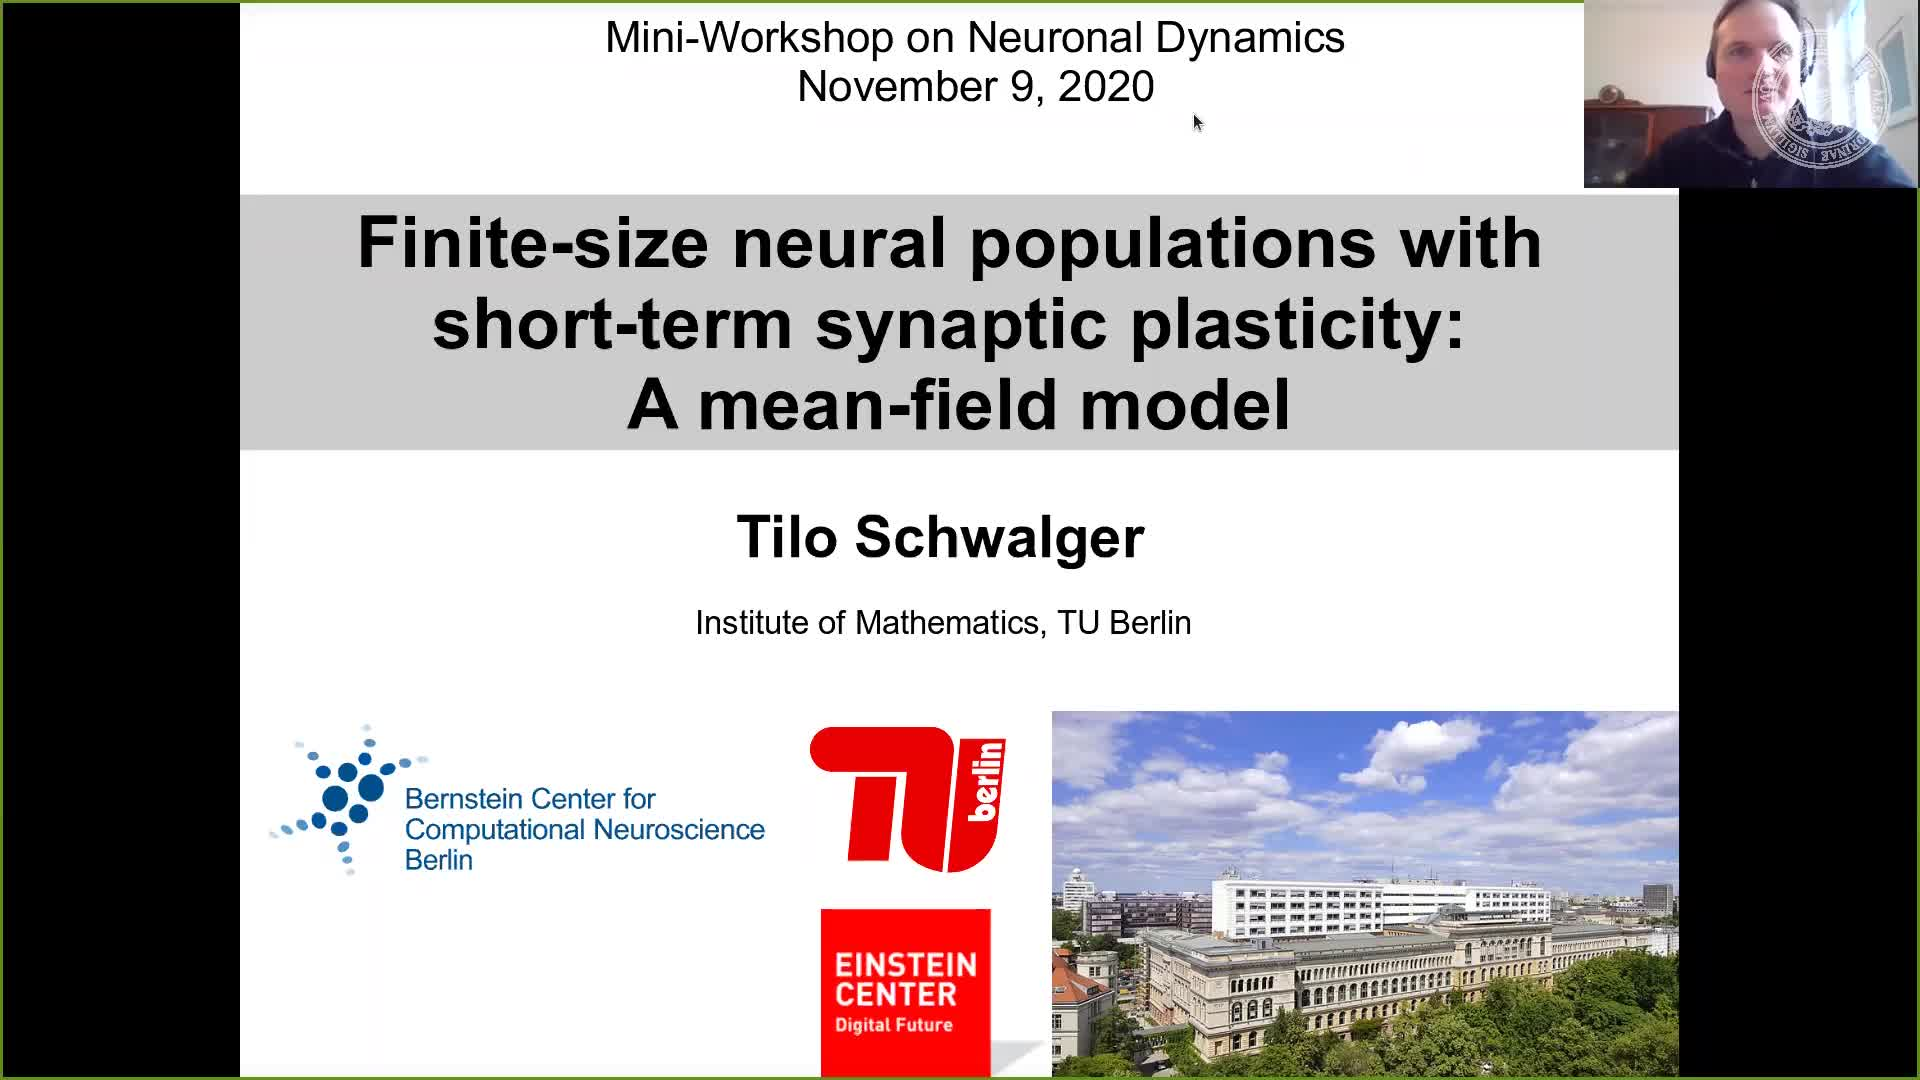 Finite-size neural populations with short-term synaptic plasticity: A mean-field model. (Tilo Schwalger, TU Berlin) preview image